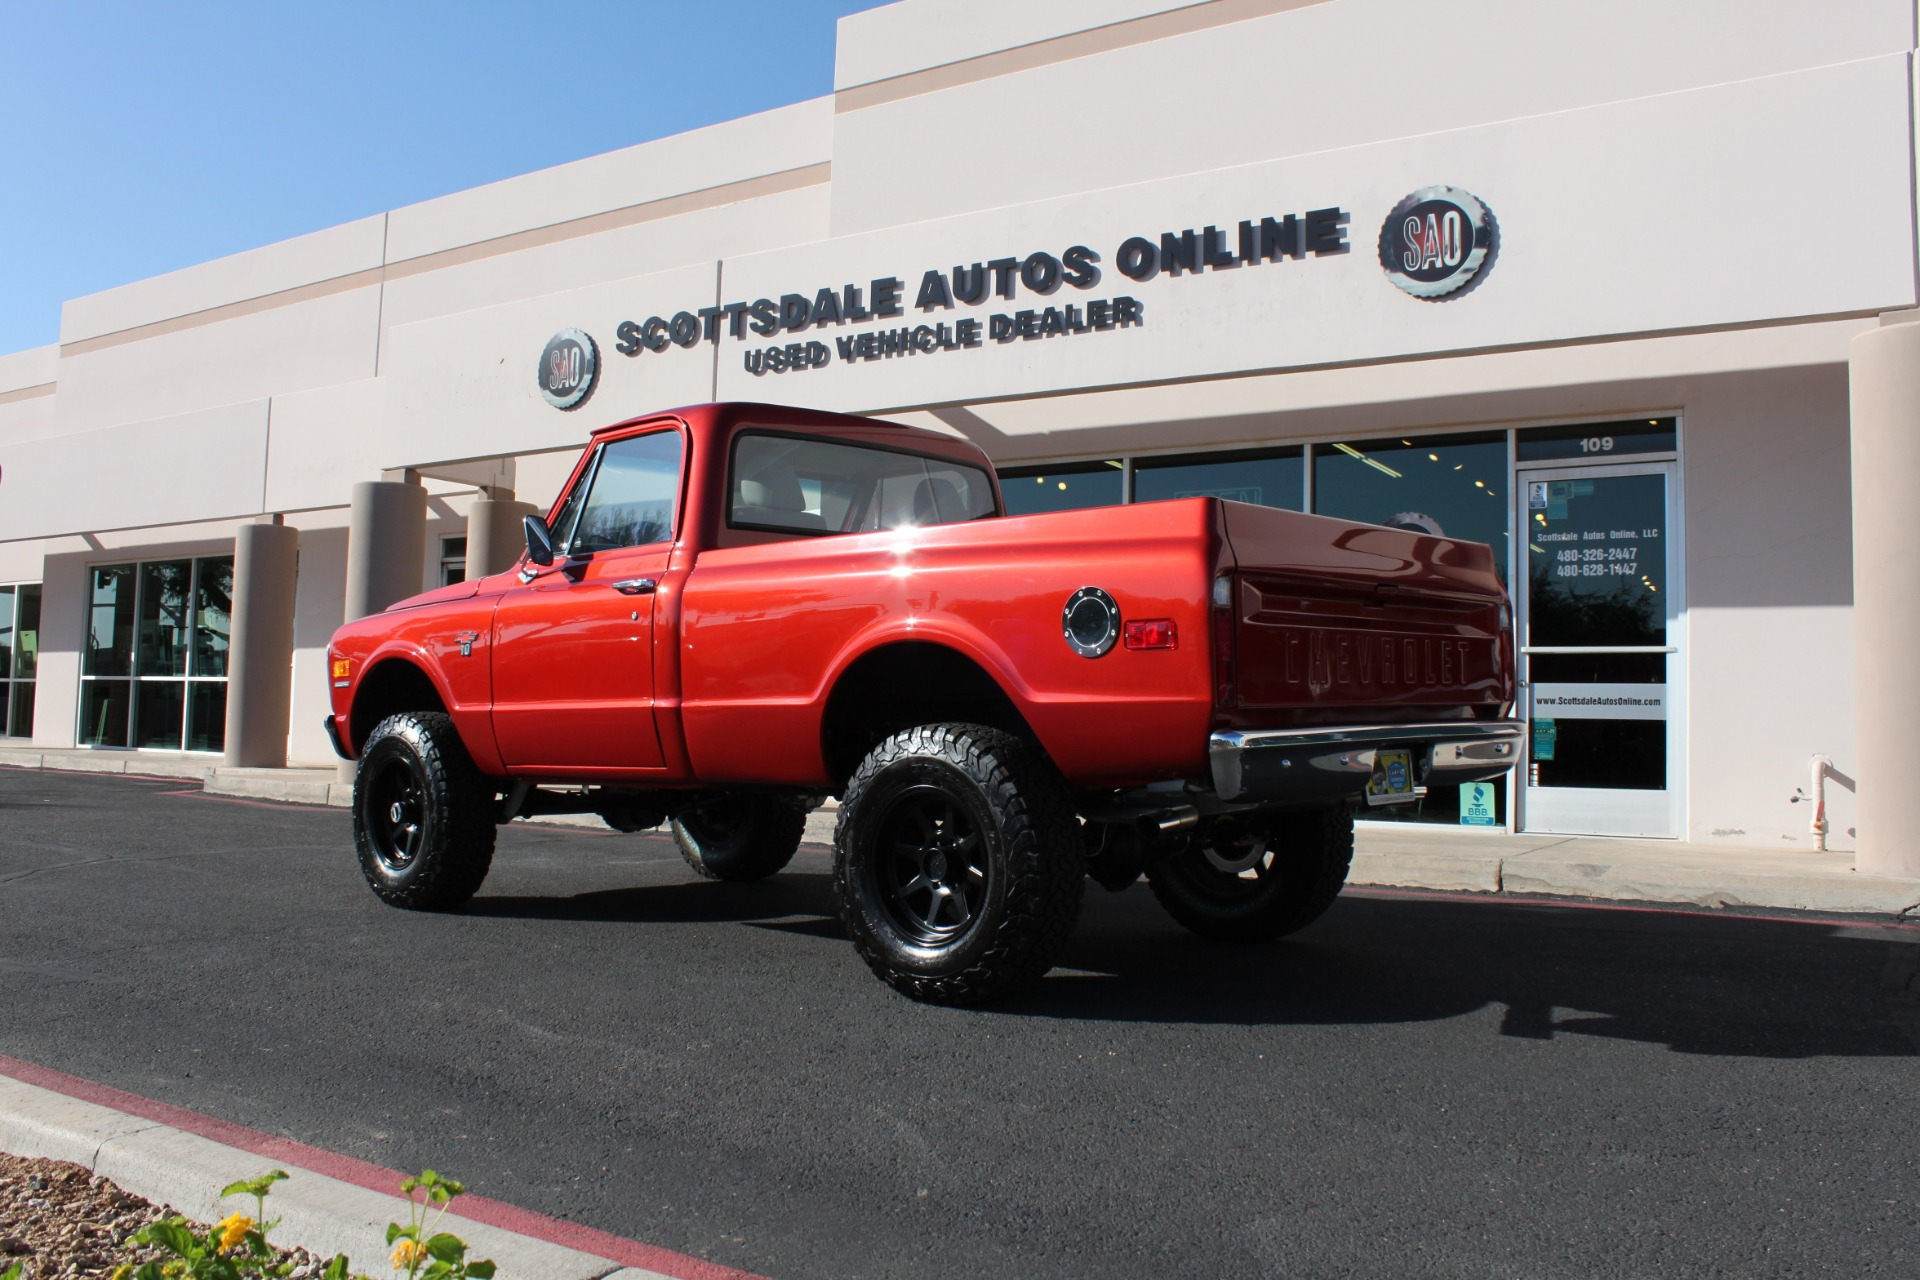 Used-1968-Chevrolet-K10-(C10)-1/2-Ton-Short-Bed-4X4-Ford